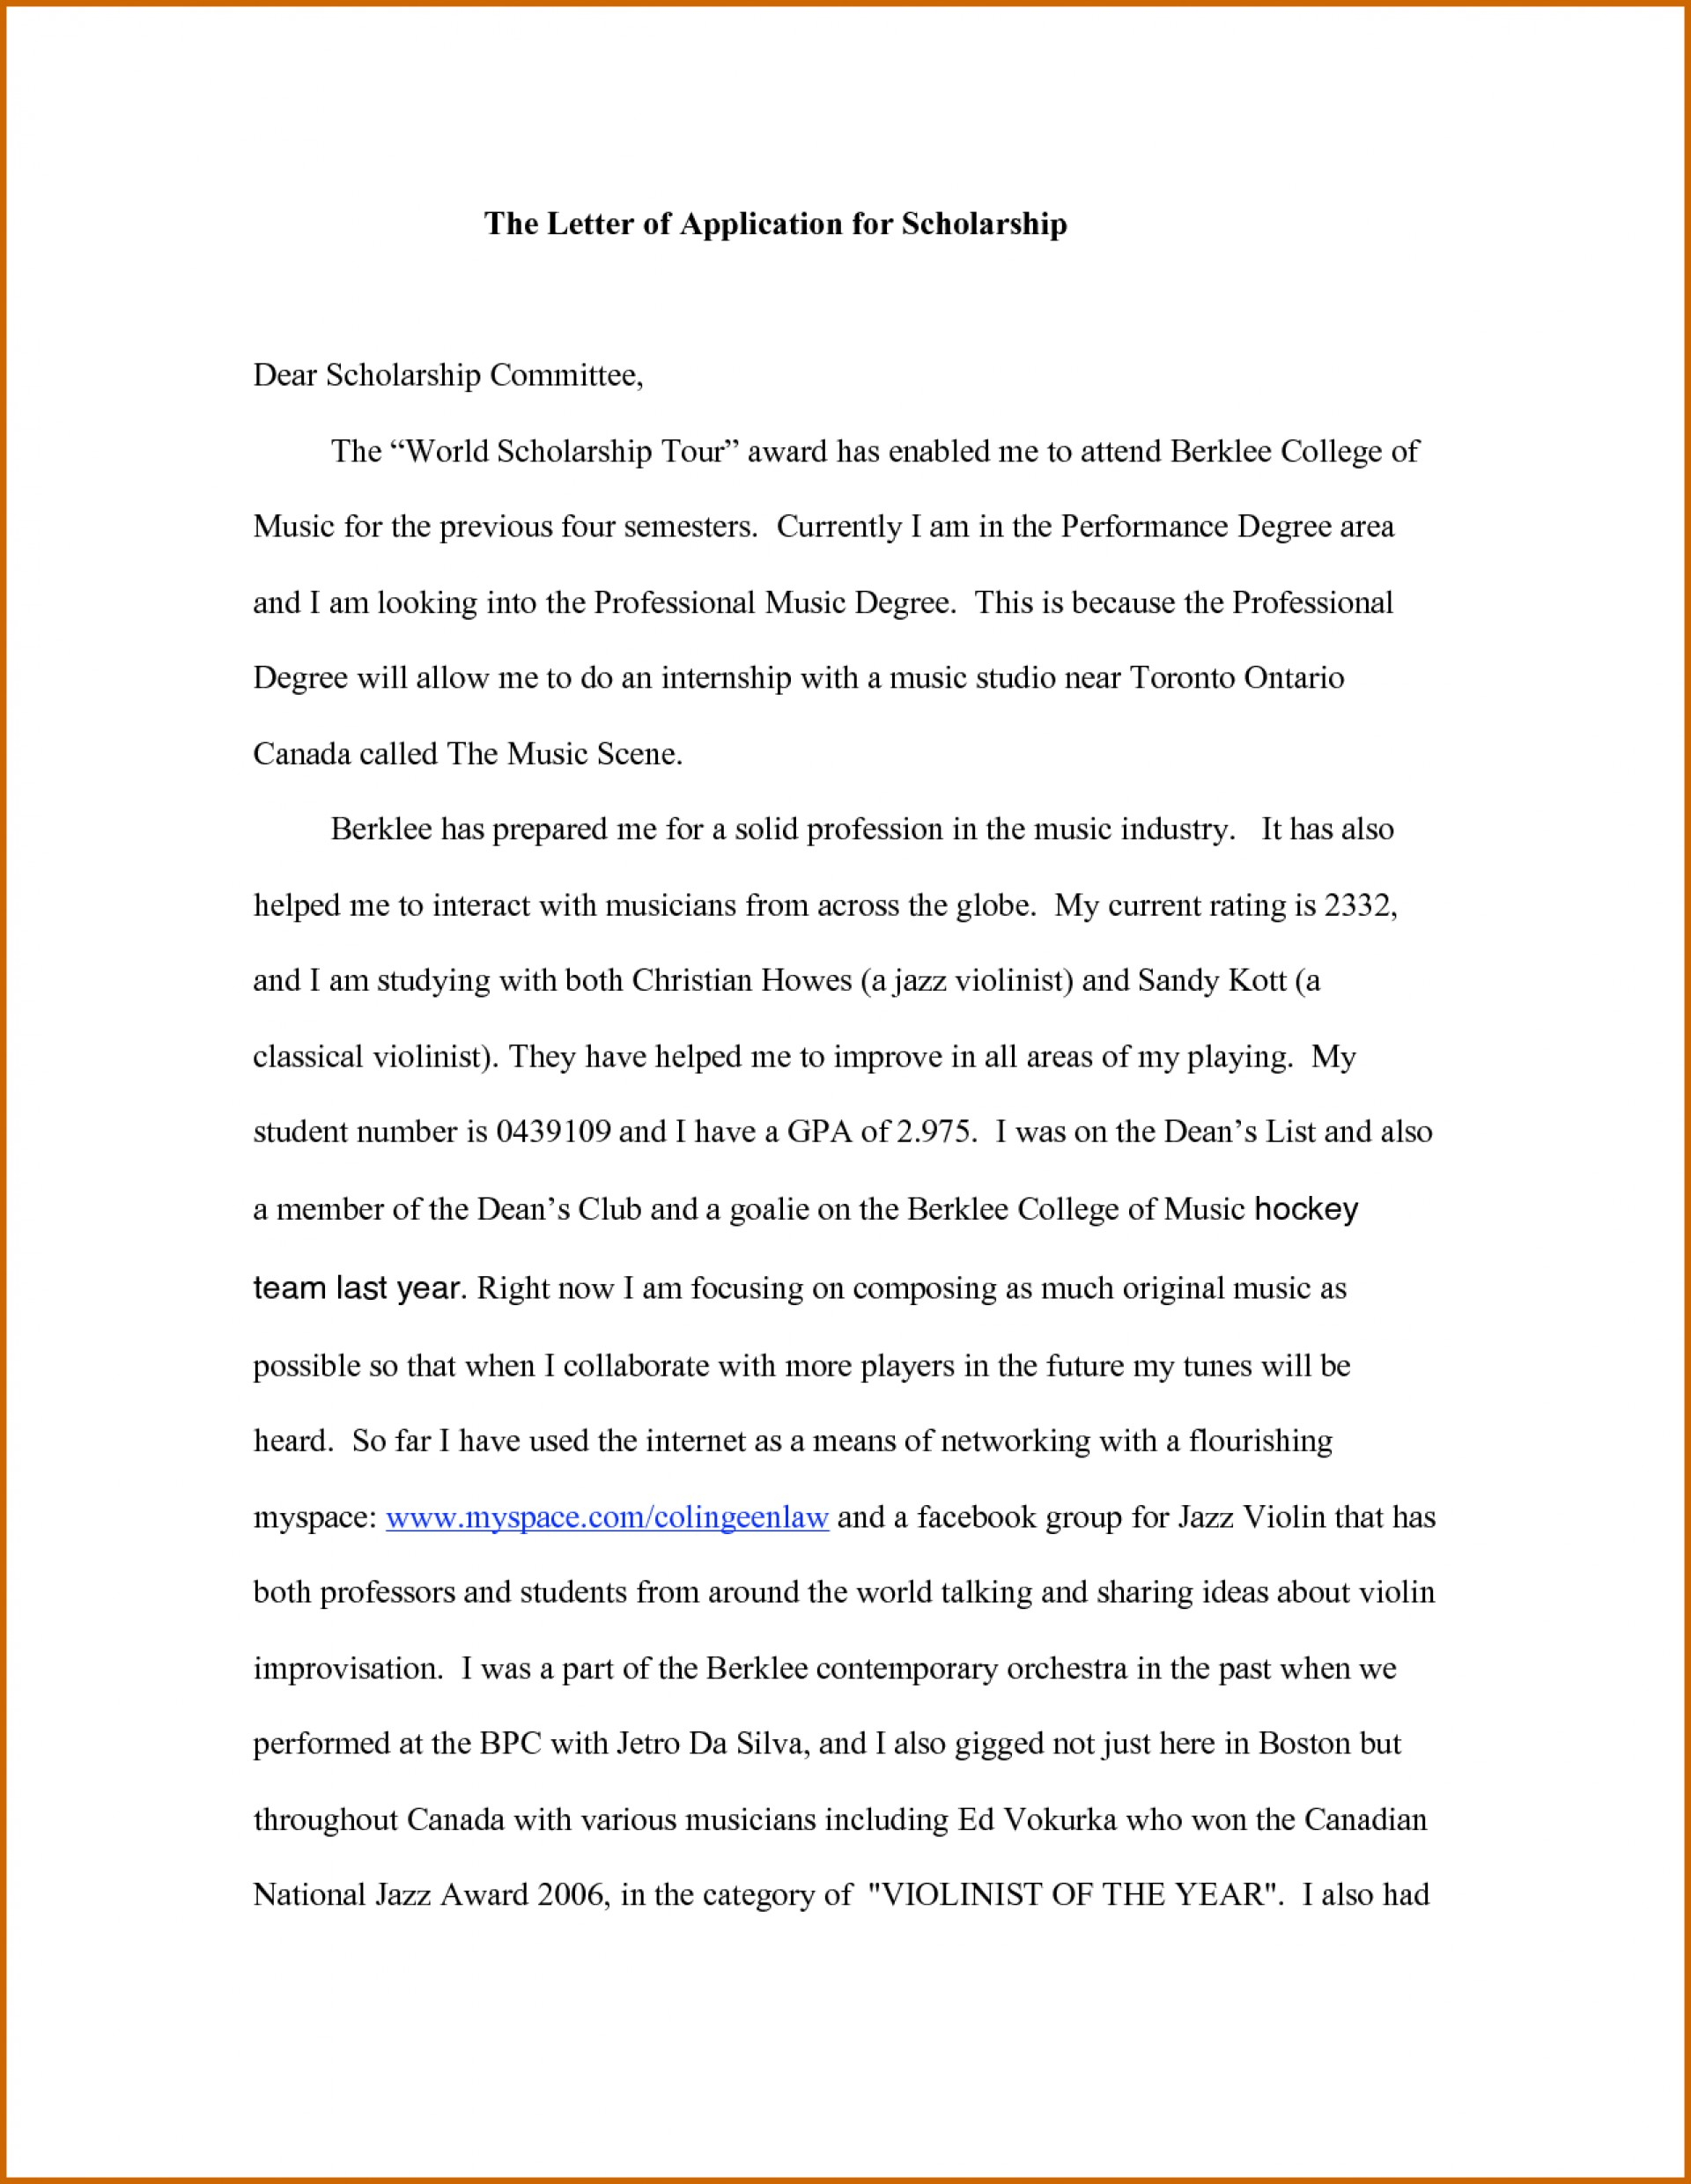 009 Essay Example How To Writepplication For Scholarship What Awesome Write A That Stands Out About Your Career Goals Financial Need 1920